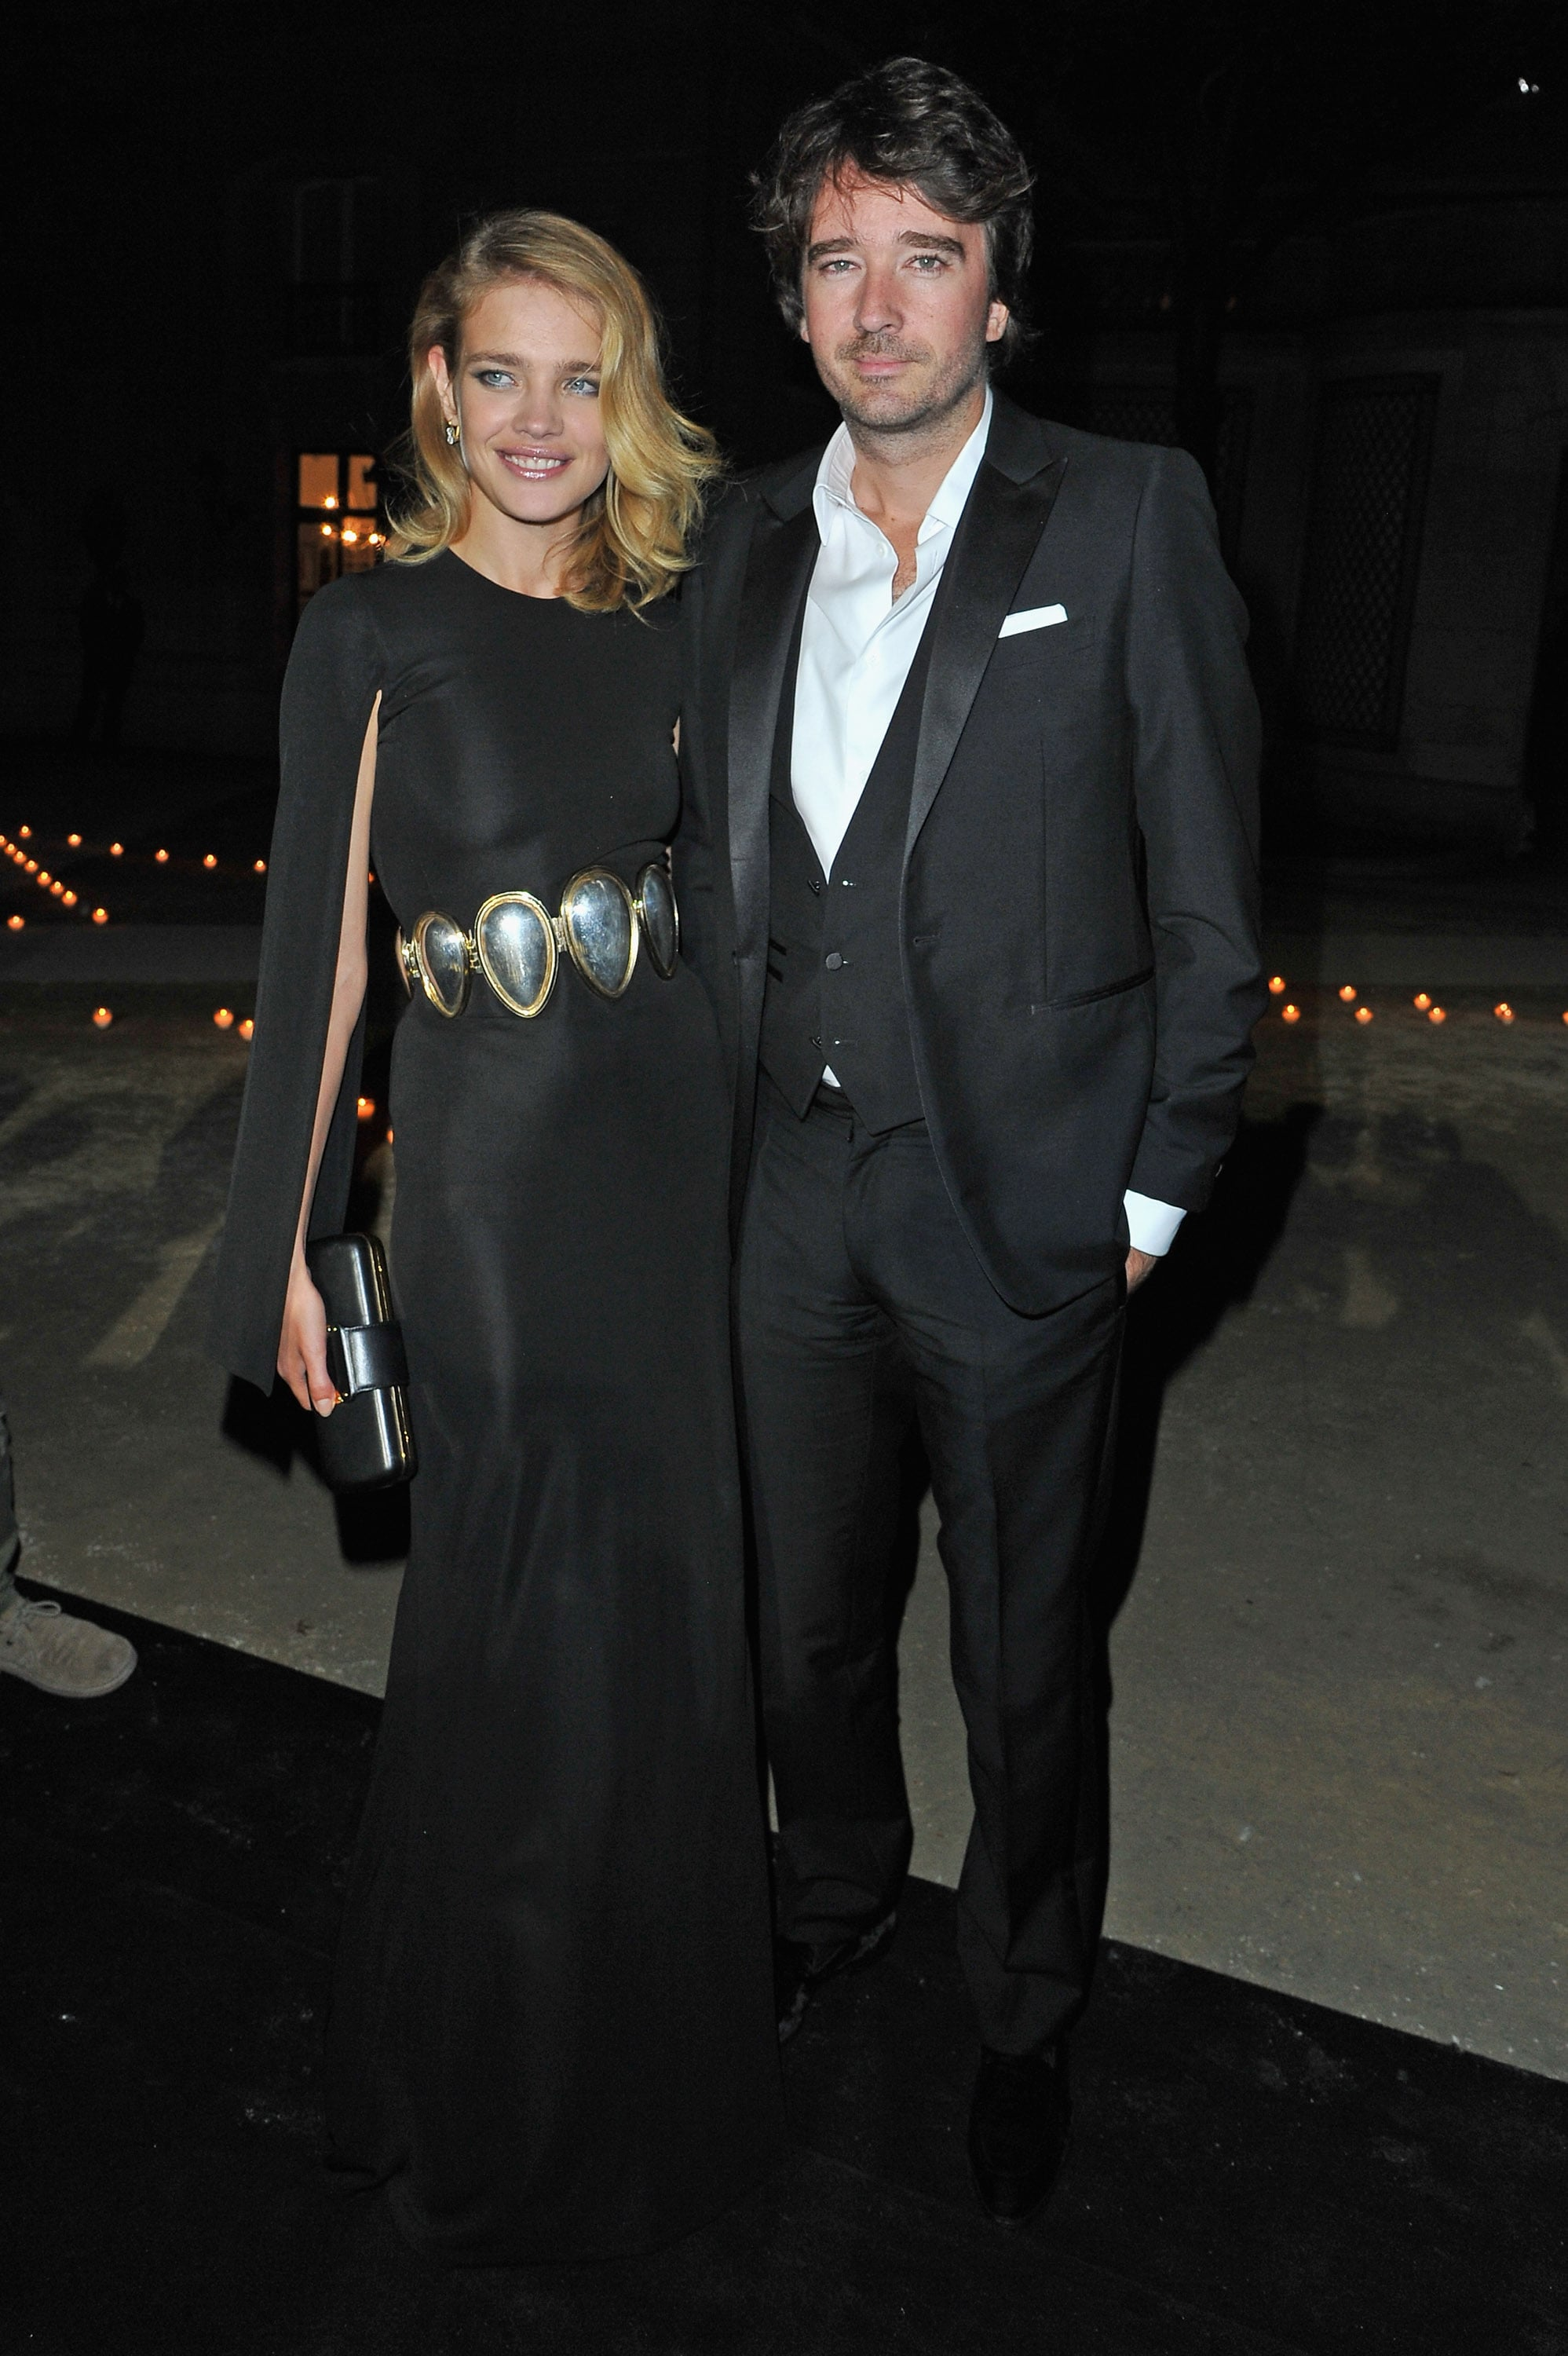 Natalia Vodianova punched up her black gown with a bold silver waist belt at the Carine Roitfeld for MAC party.